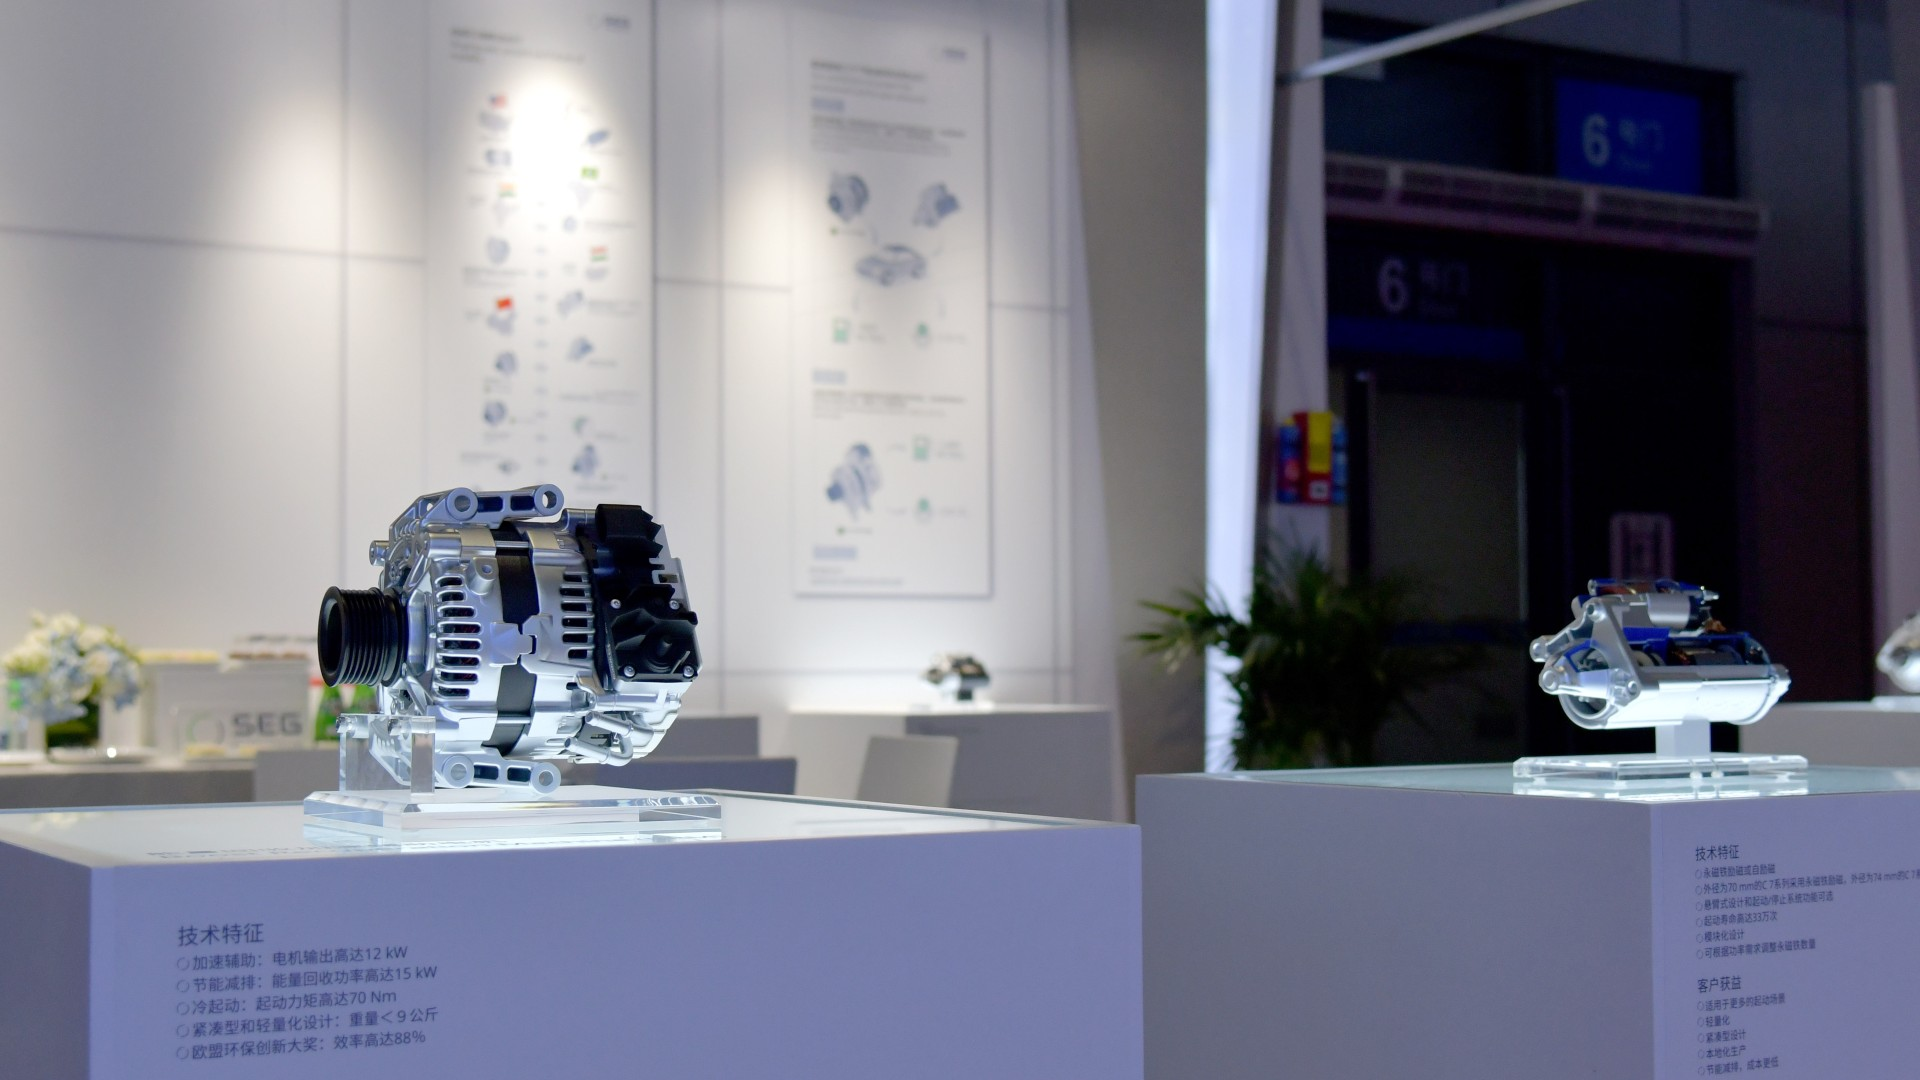 Trade show exhibits 48V BRM 2.8 and starter motor from SEG Automotive during Auto Shanghai